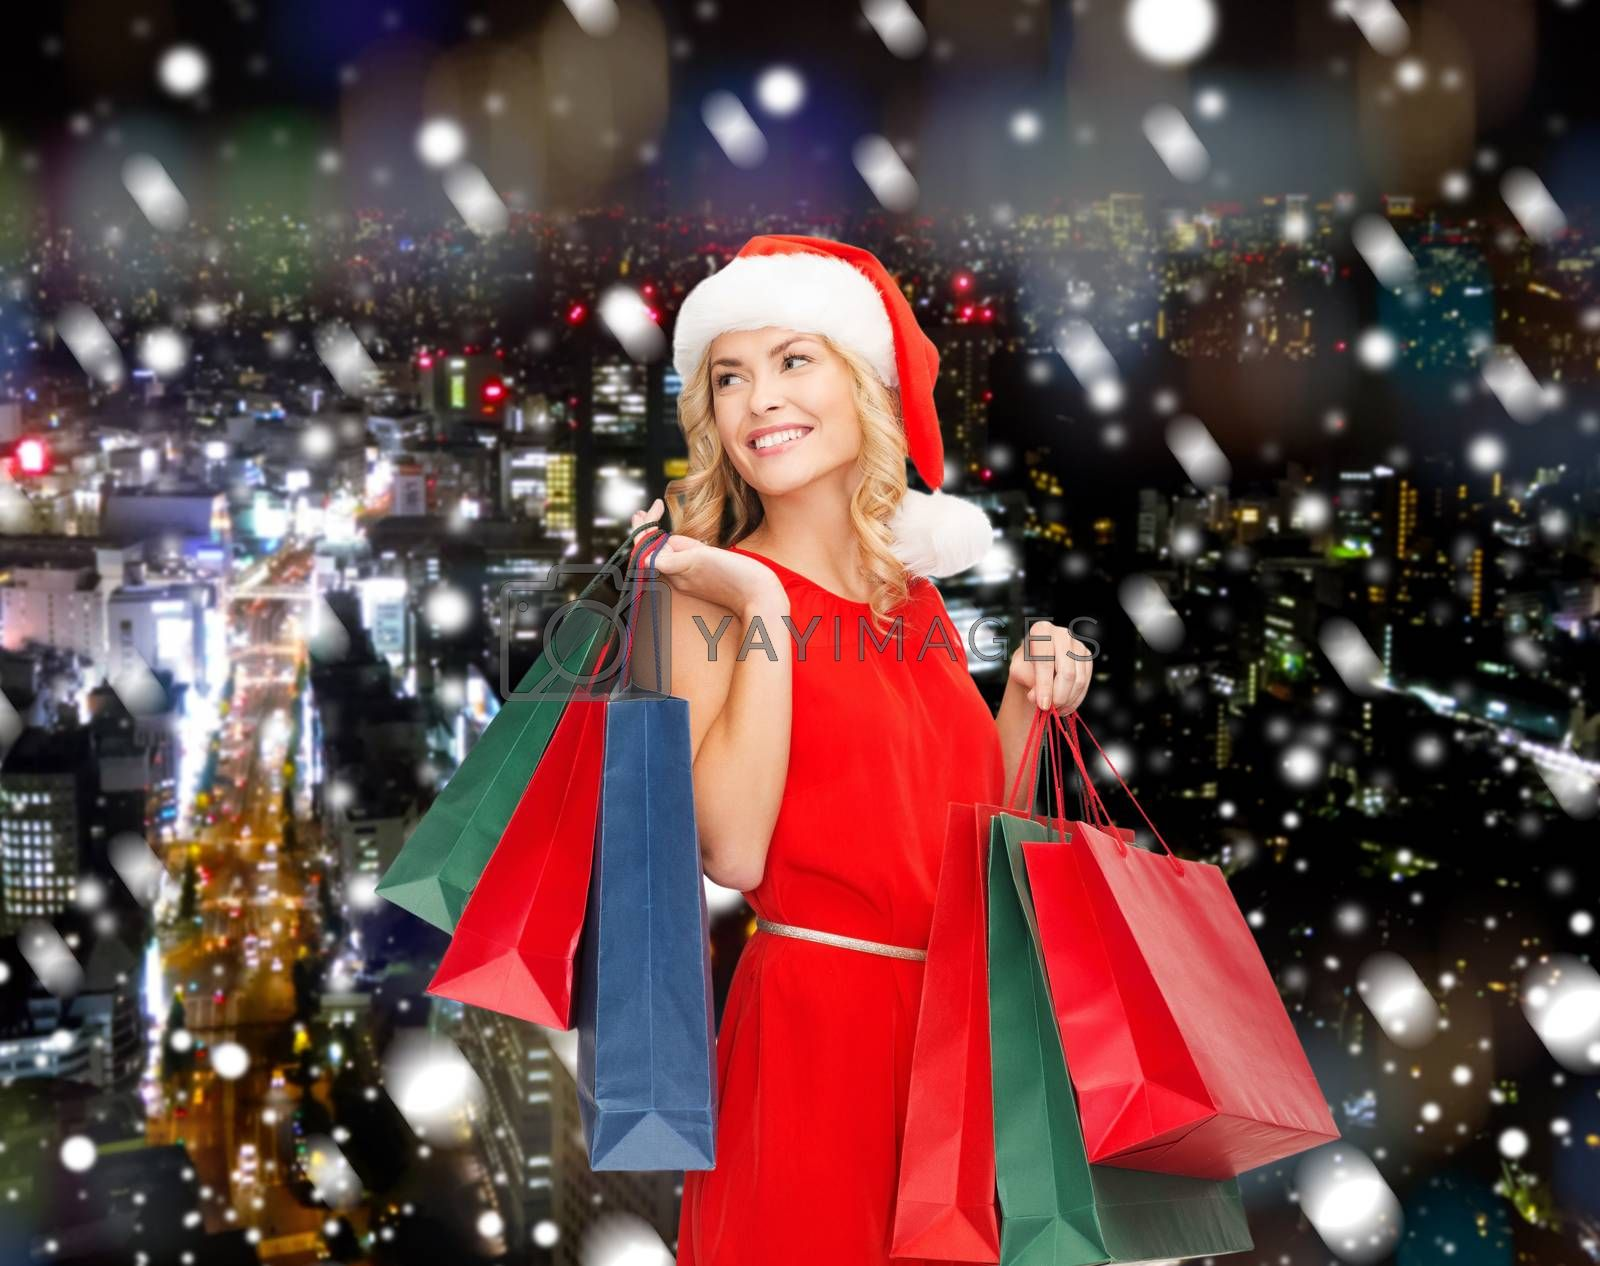 sale, gifts, christmas, holidays and people concept - smiling woman in red dress and santa helper hat with shopping bags over snowy night city background